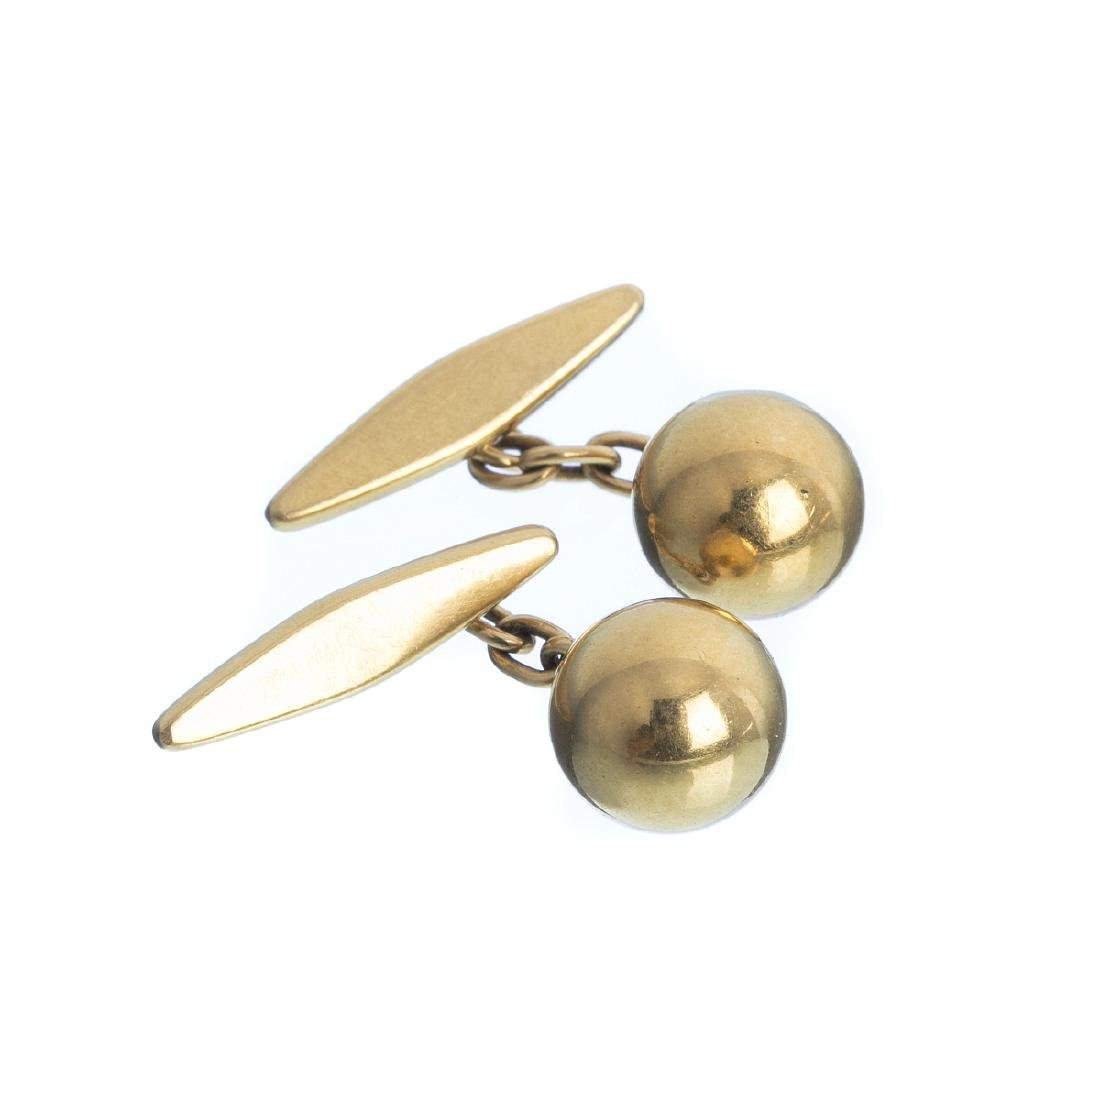 Pair of gold cuff-links